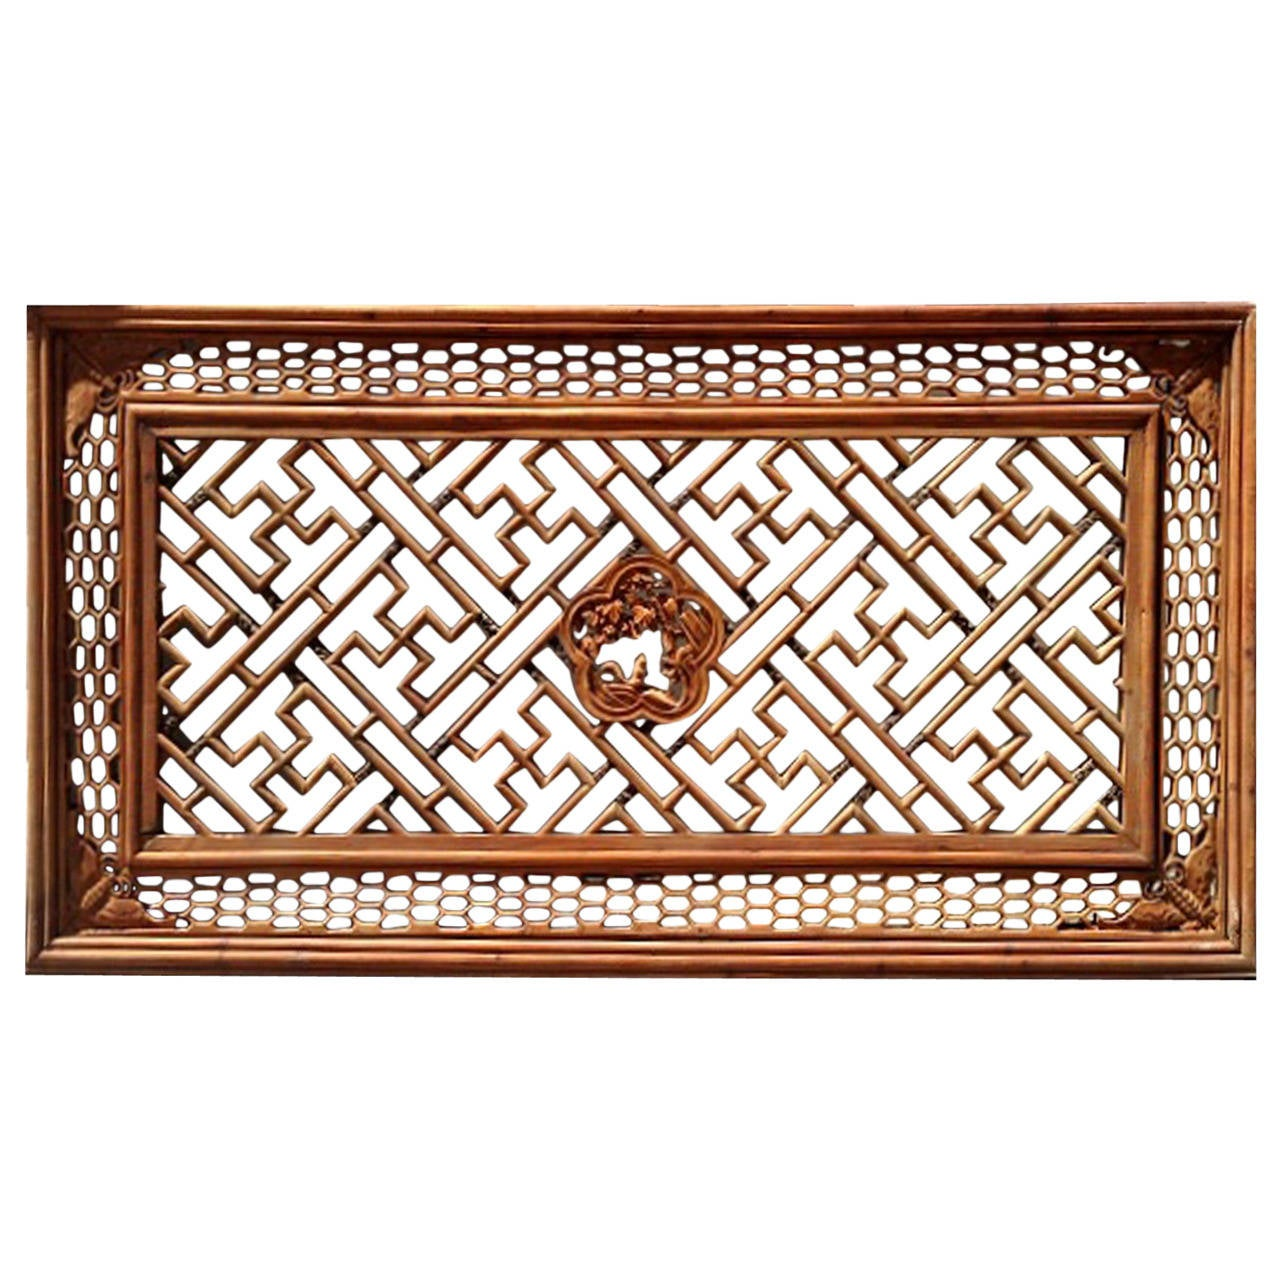 Large Chinese Antique Fretwork Screen Panel At 1stdibs